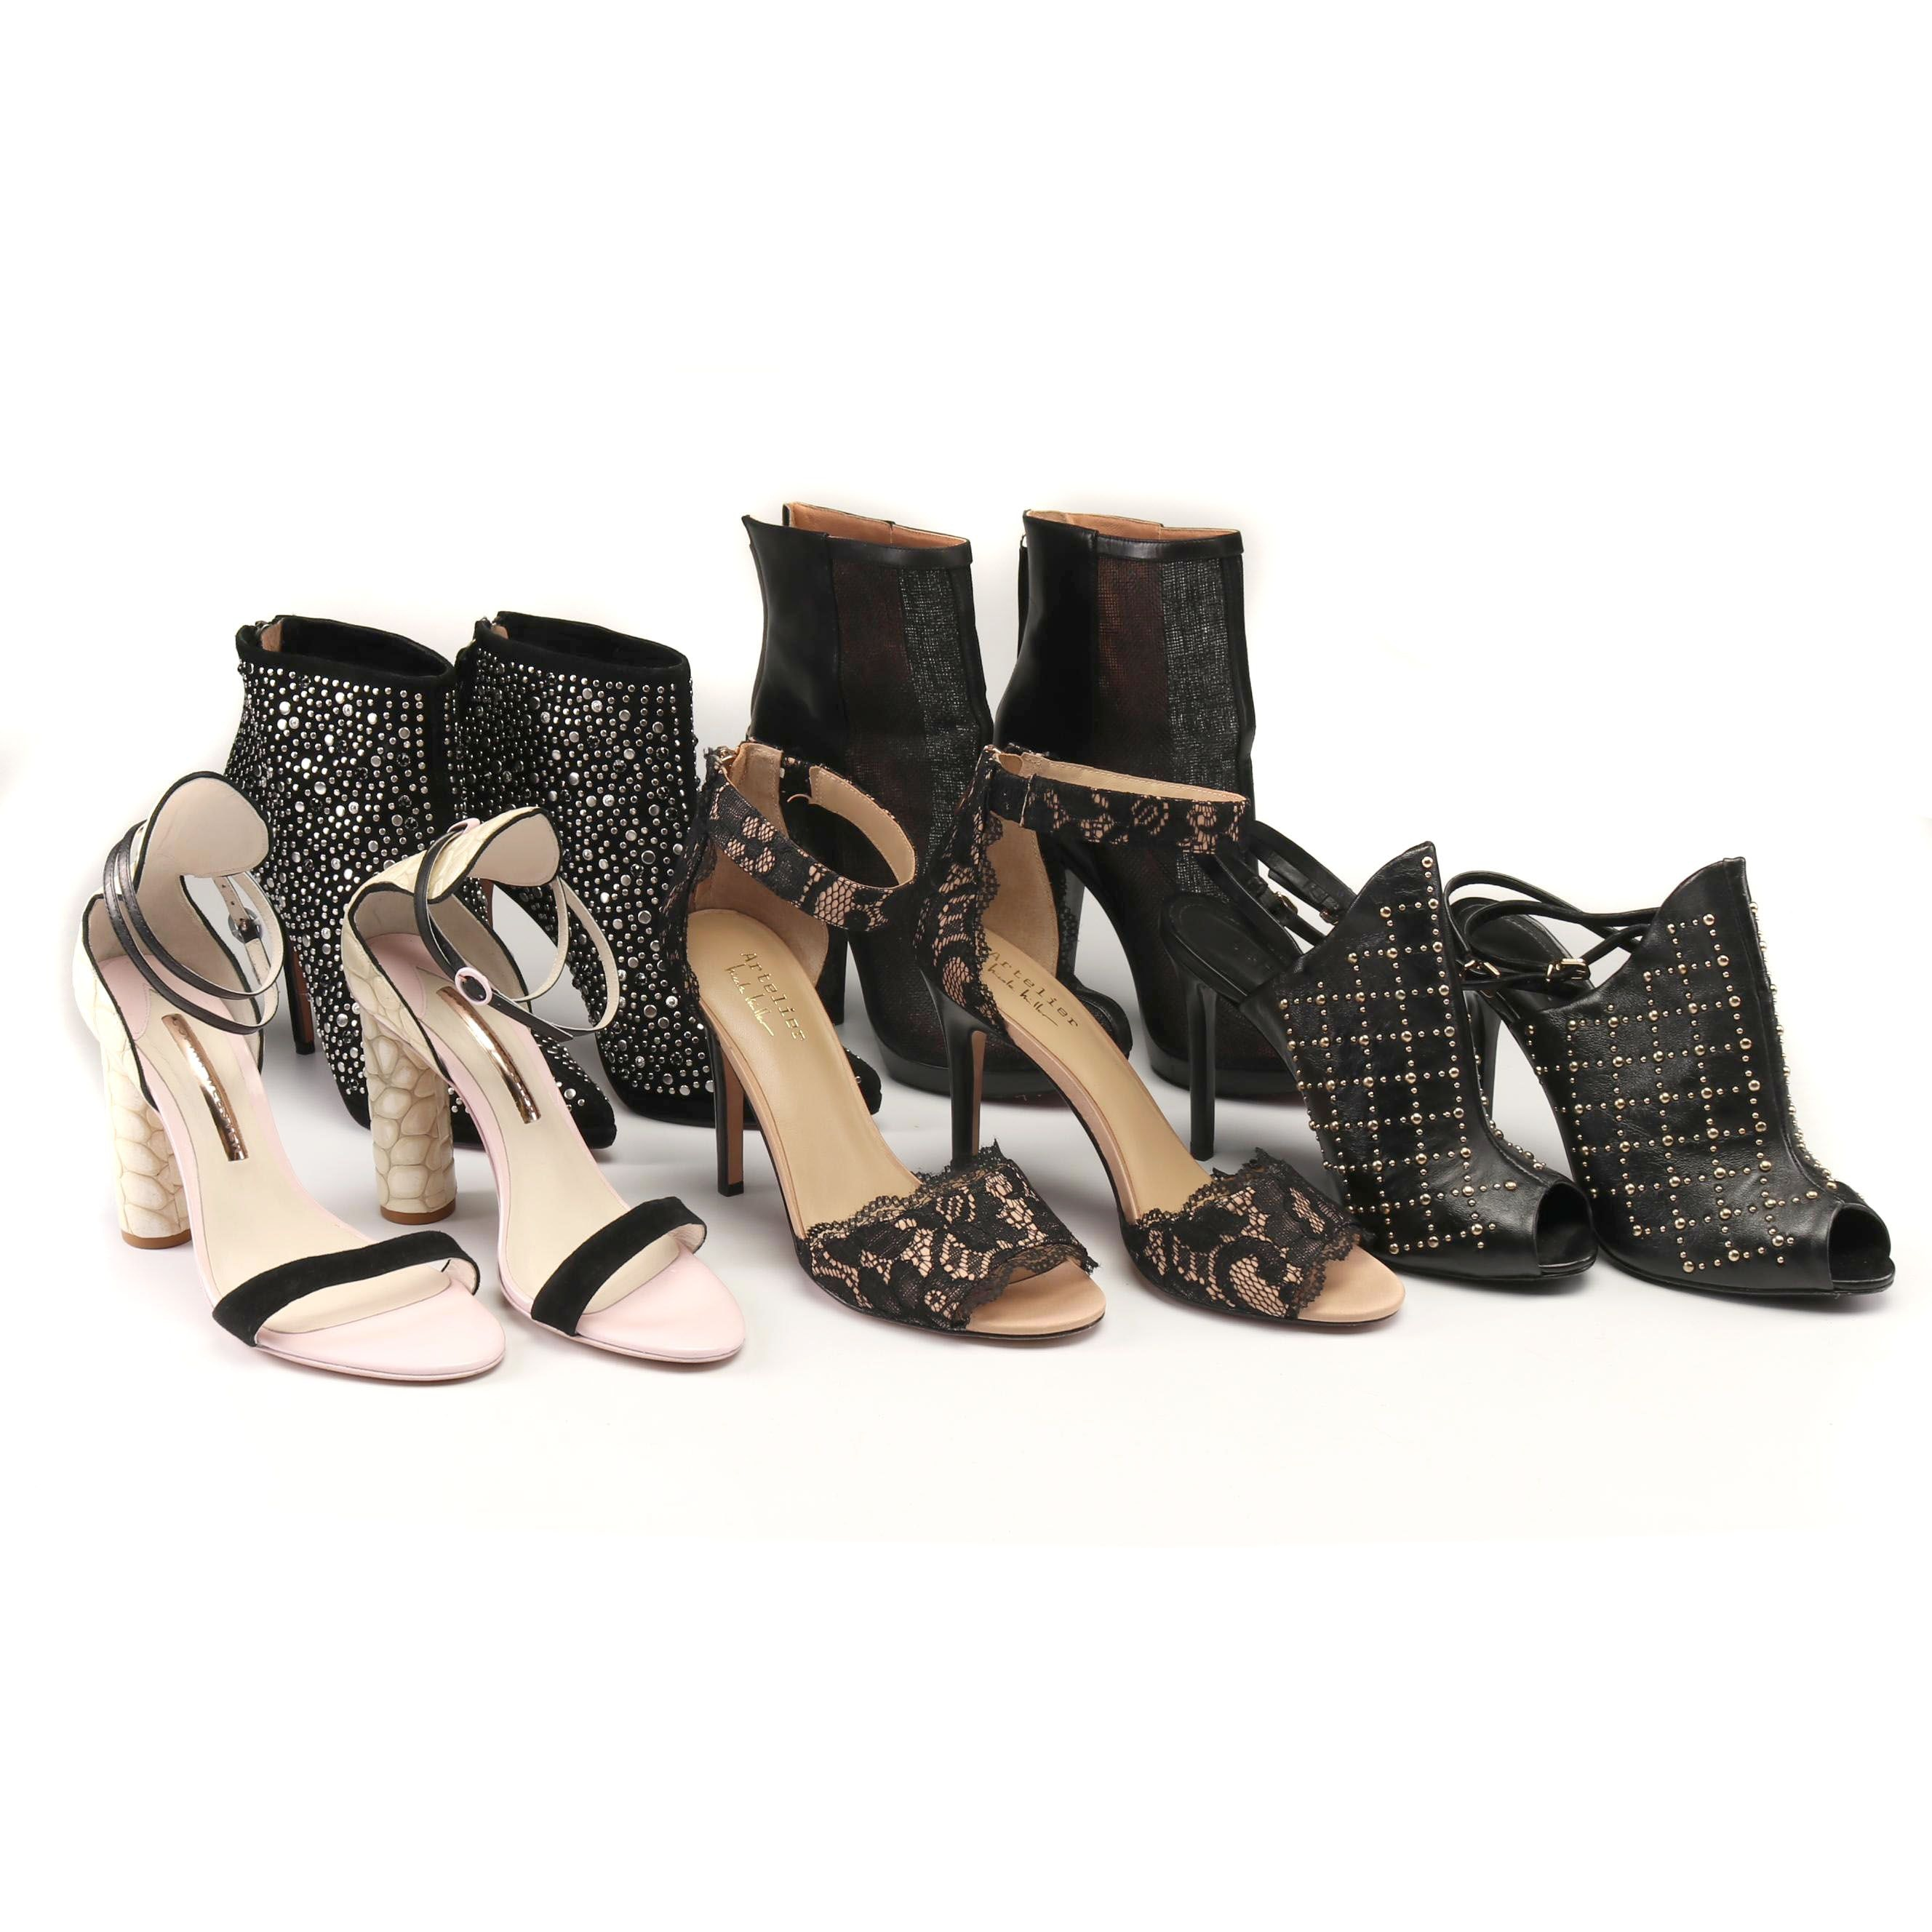 Booties and Ankle Strap High Heels Including Rachel Zoe, and Jean-Michel Cazabat